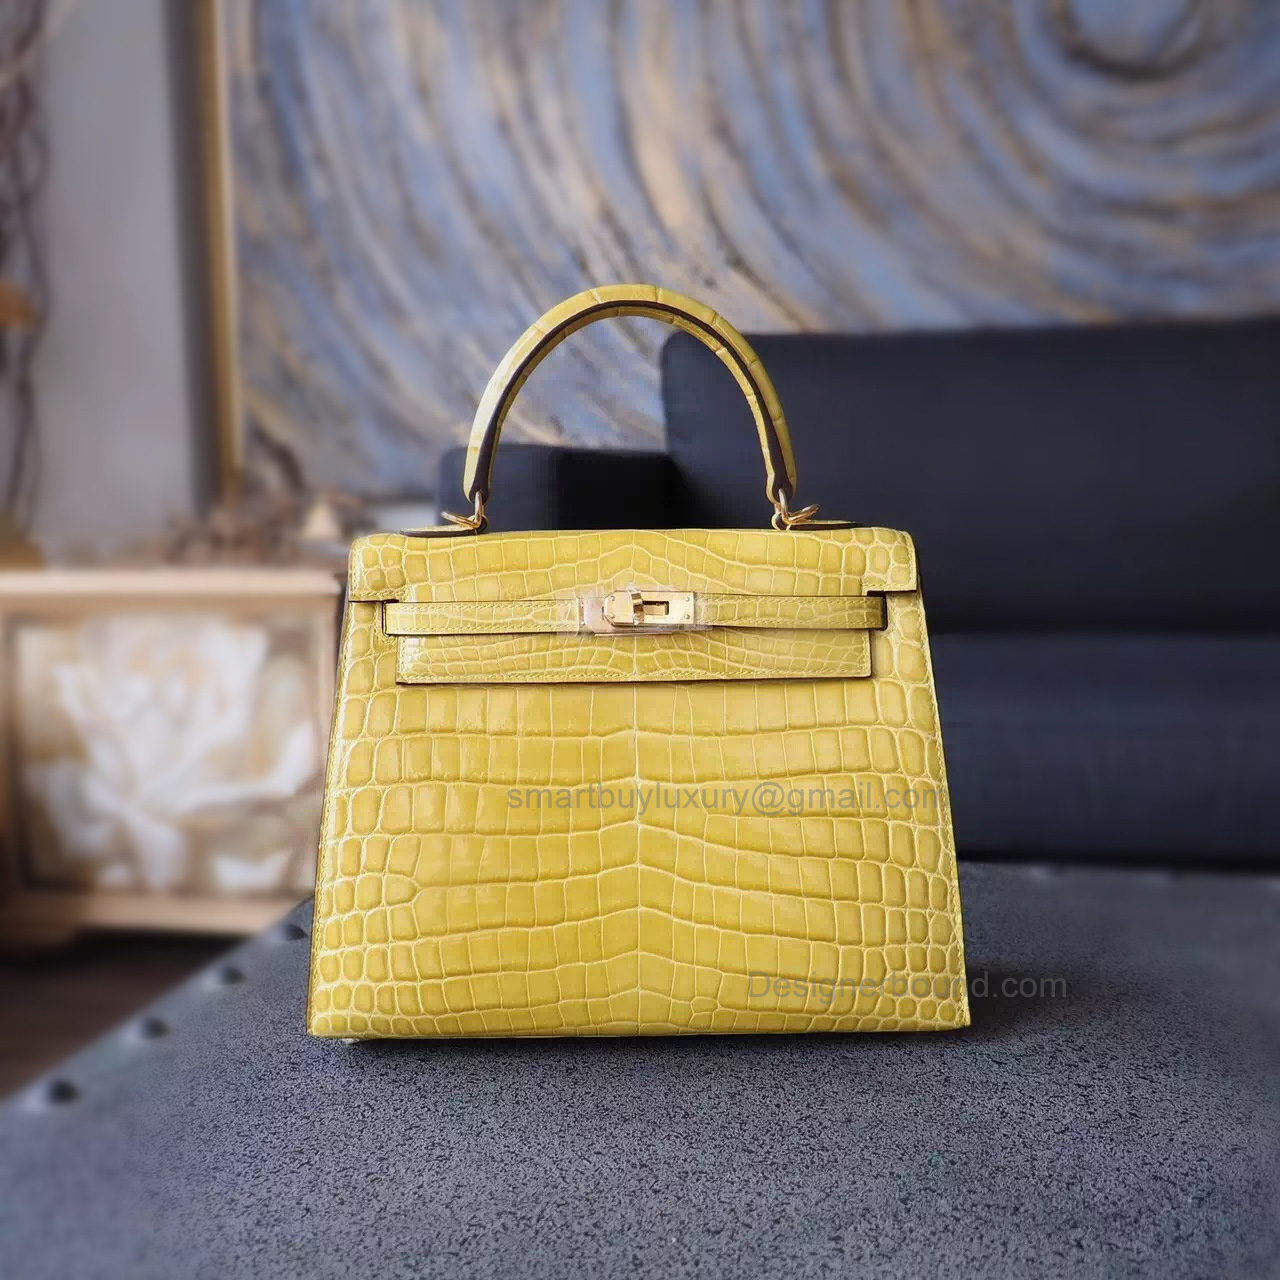 Replica Hermes Kelly 25 Handmade Bag in 9r Lime Shining Niloticus Croc GHW